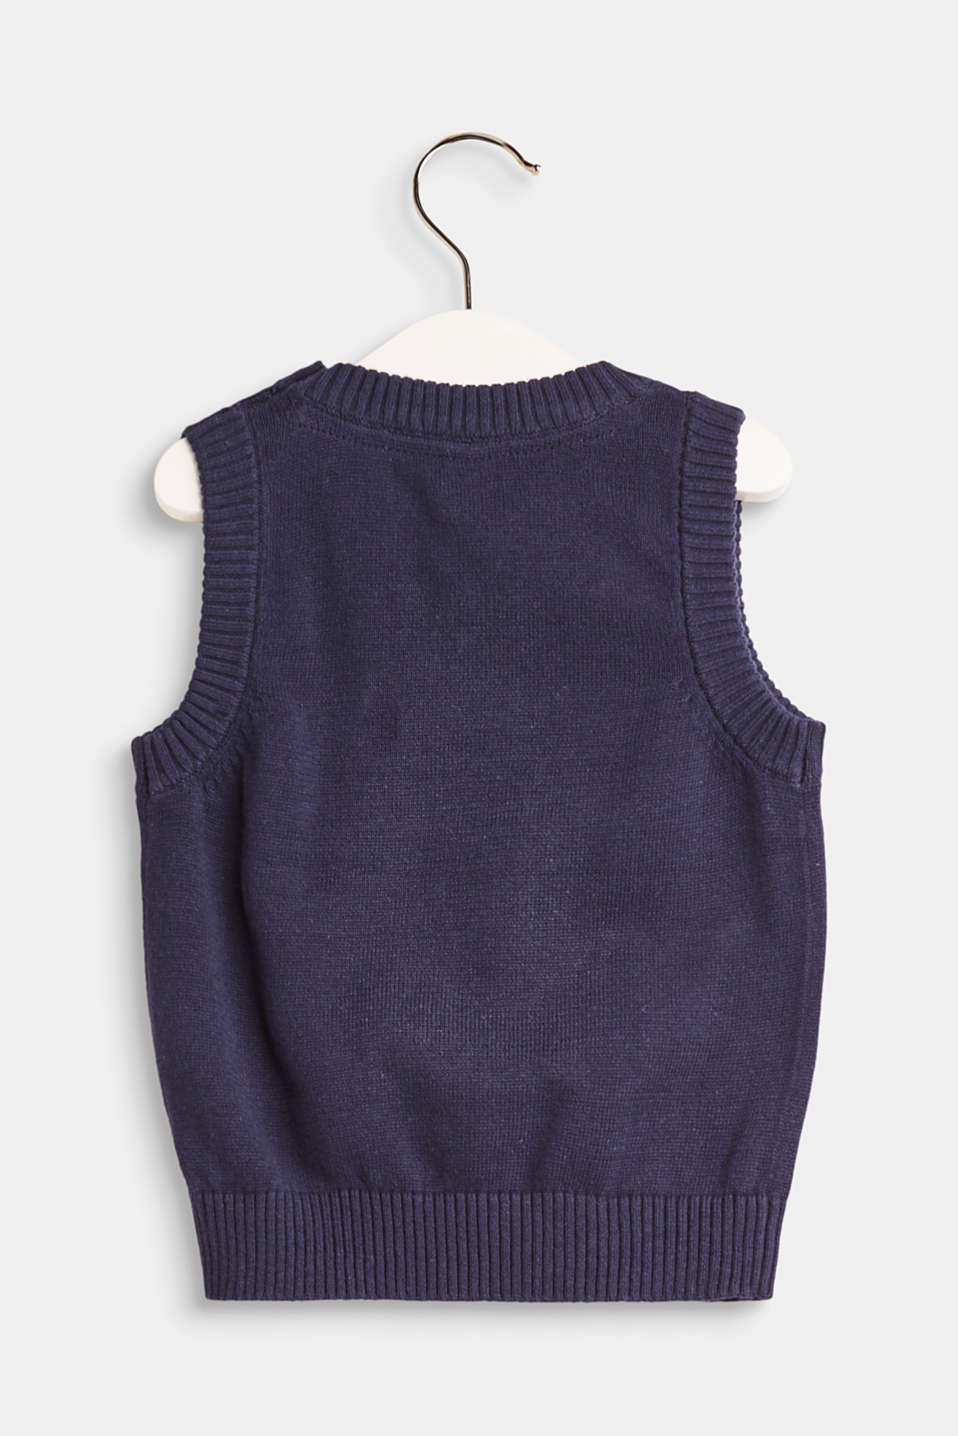 Knitted vest in 100% cotton